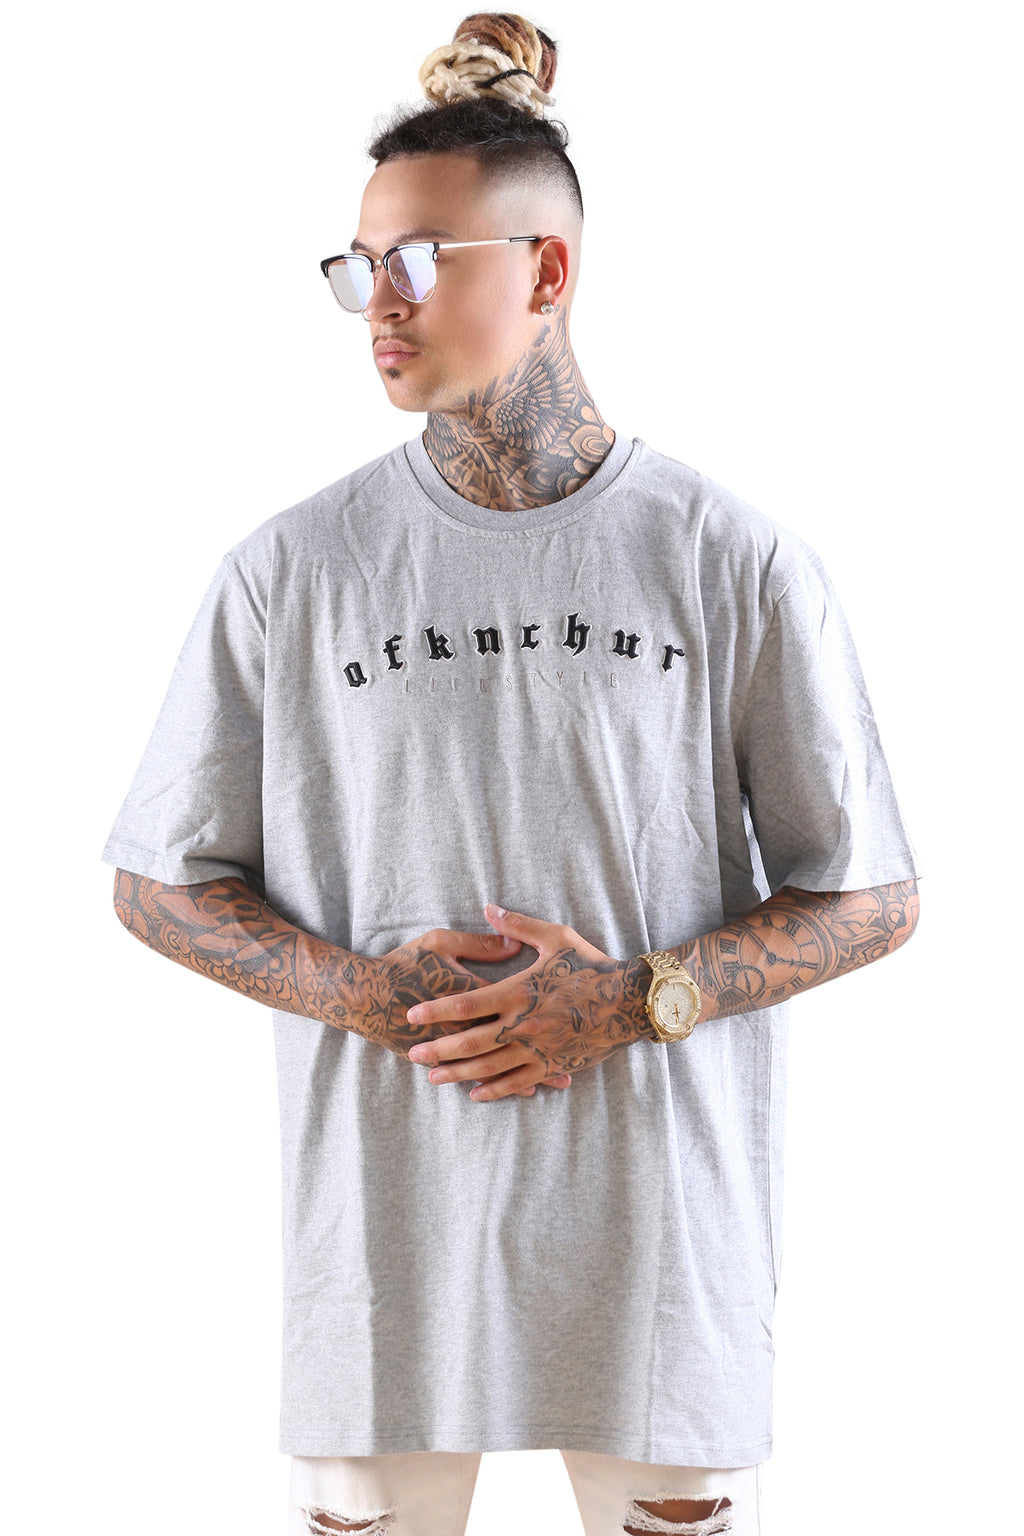 AFKNCHUR Embedded Tee Heather Grey